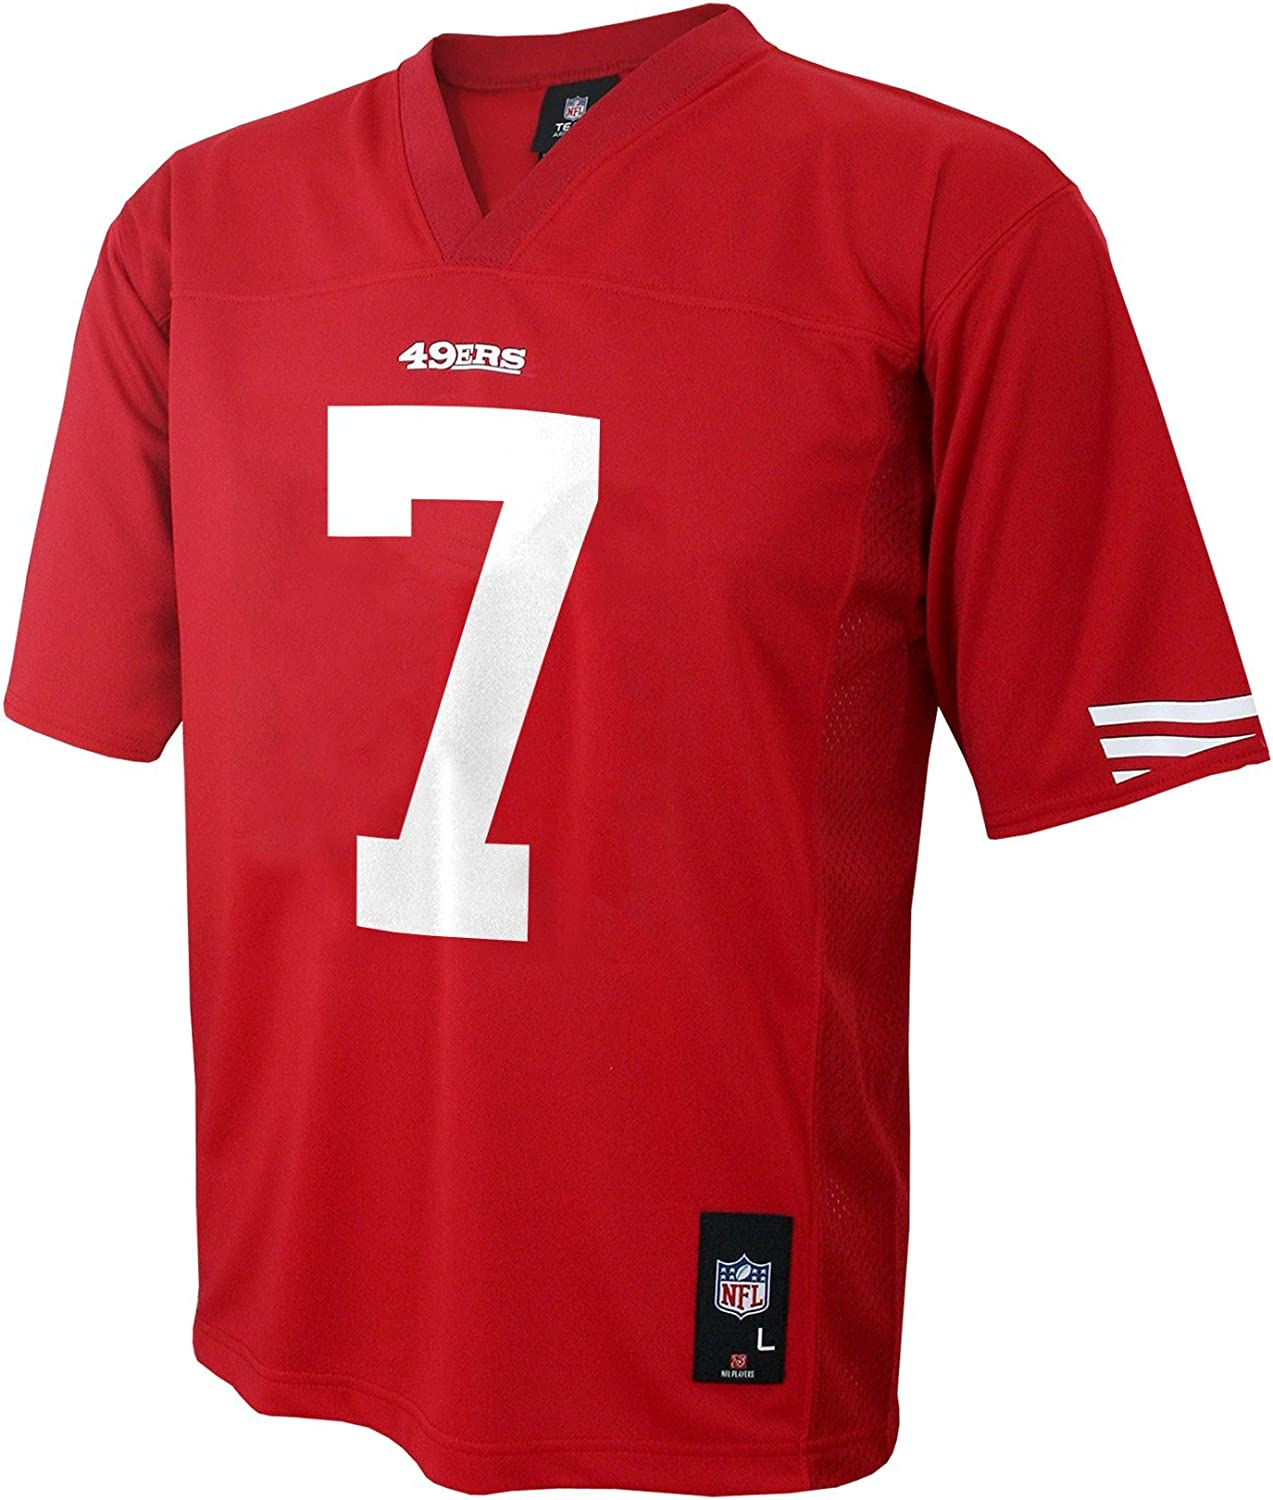 NFL Youth Boys 8-20 Mid-Tier Jersey